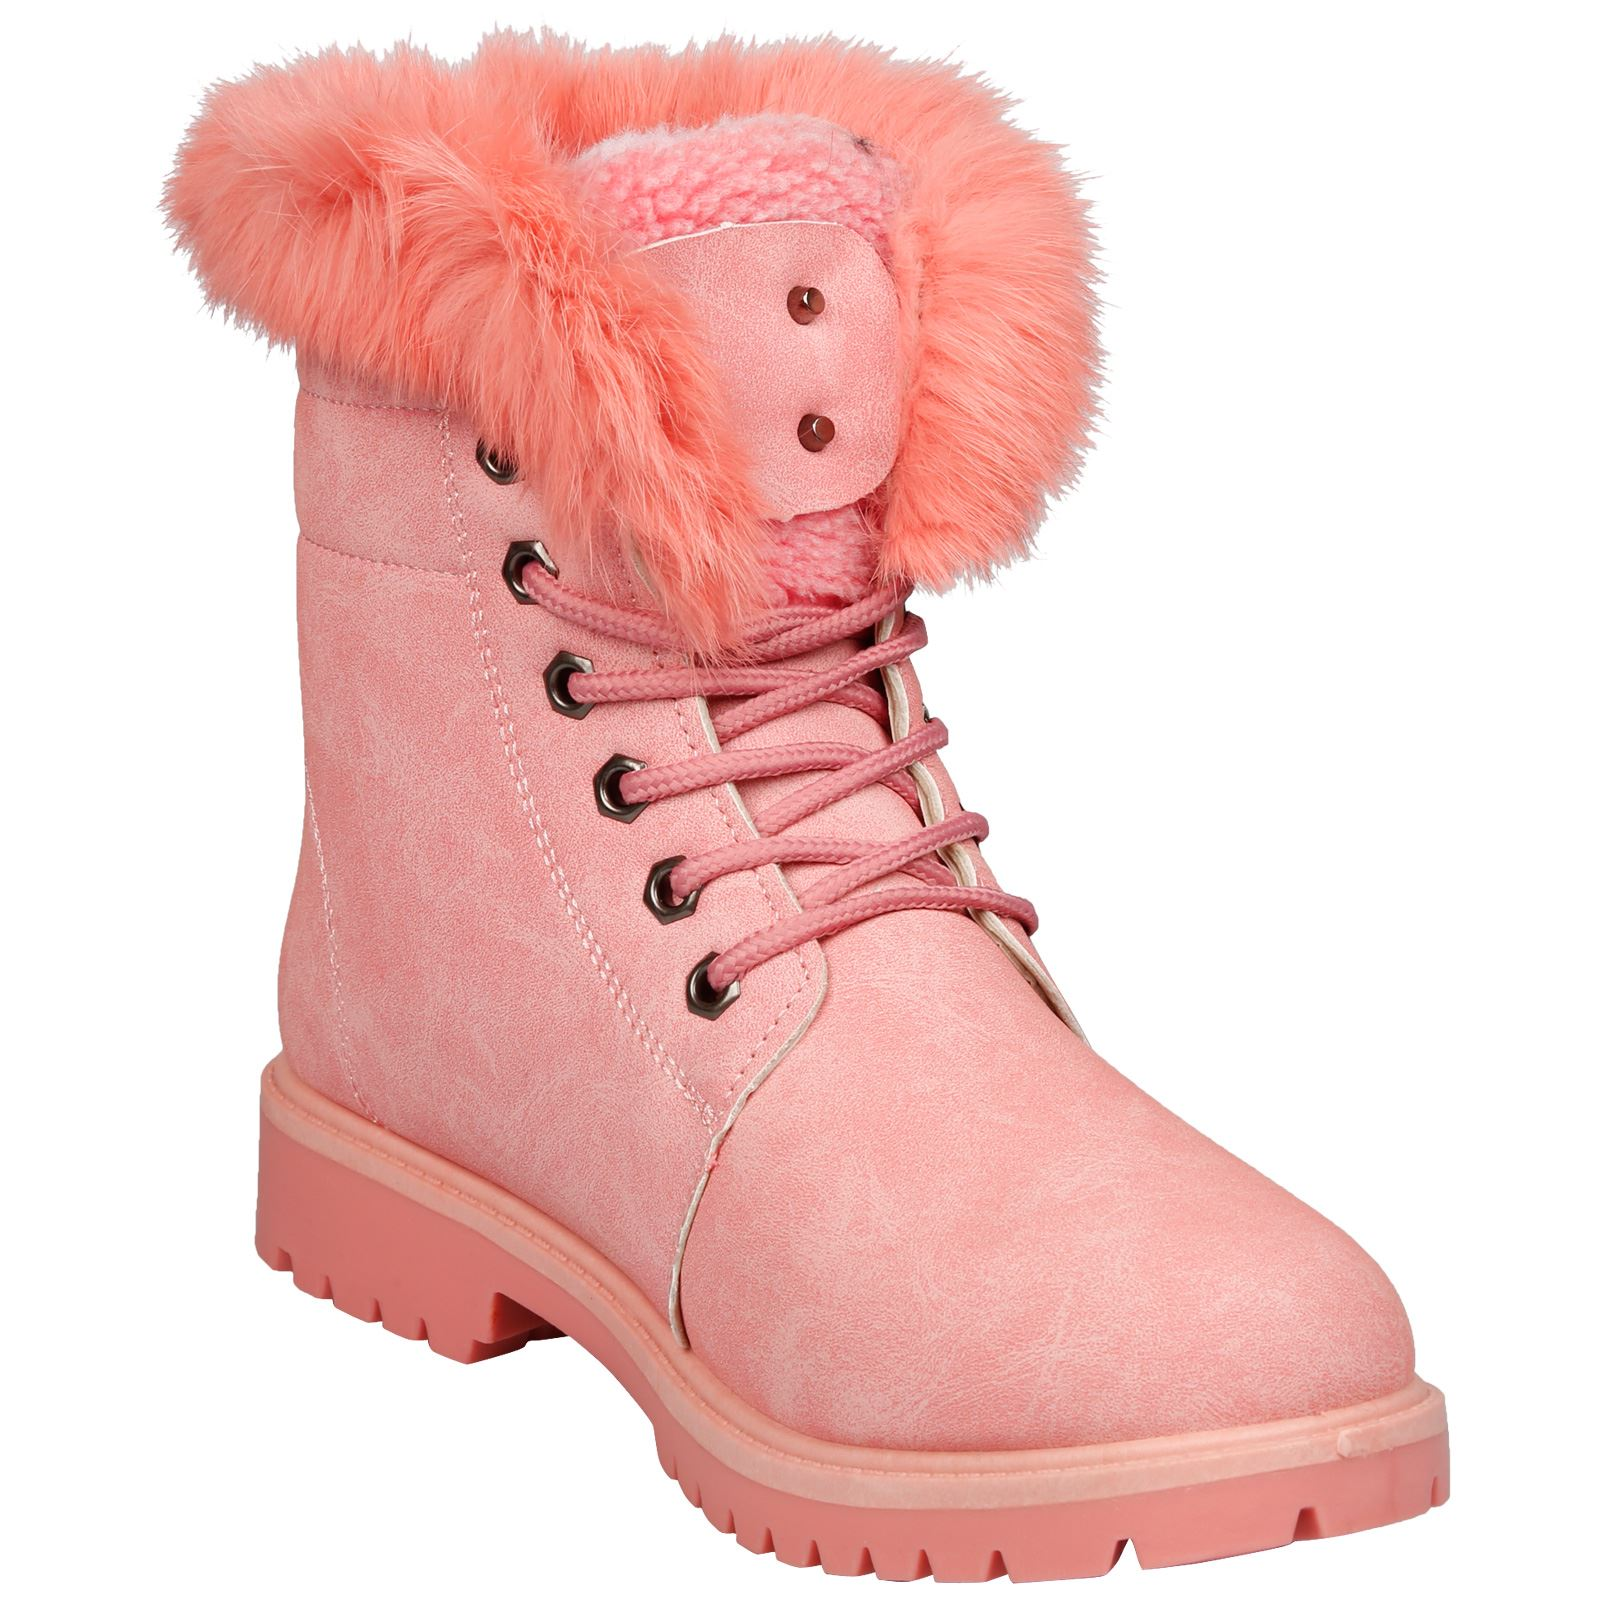 NEW-WOMEN-SHOES-LADIES-FUR-LINED-LOW-HEEL-LACE-UP-ANKLE-BOOTS-CASUAL-STYLE-SIZE thumbnail 17